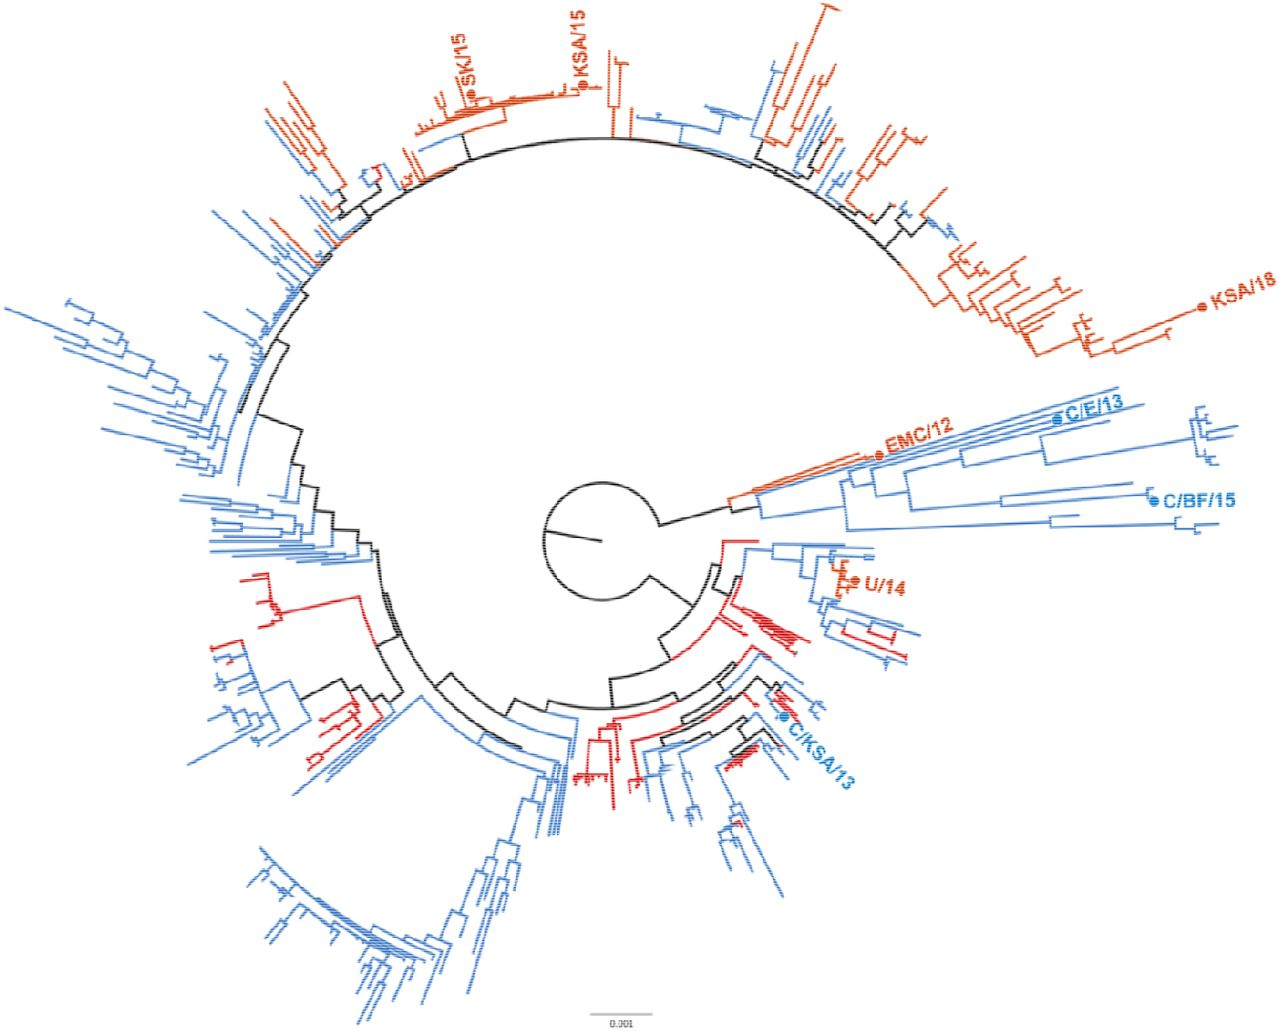 Phylogenetic tree of MERS-CoV strains. Maximum likelihood tree of 446 full MERS CoV genomes showing distribution of isolates used in this study. Human-derived MERS-CoV isolates used in this study are highlighted in red, camel-derived MERS-CoV isolates are highlighted in blue. Phylogenetic tree reconstructed with PhyML and rooted at the midpoint.